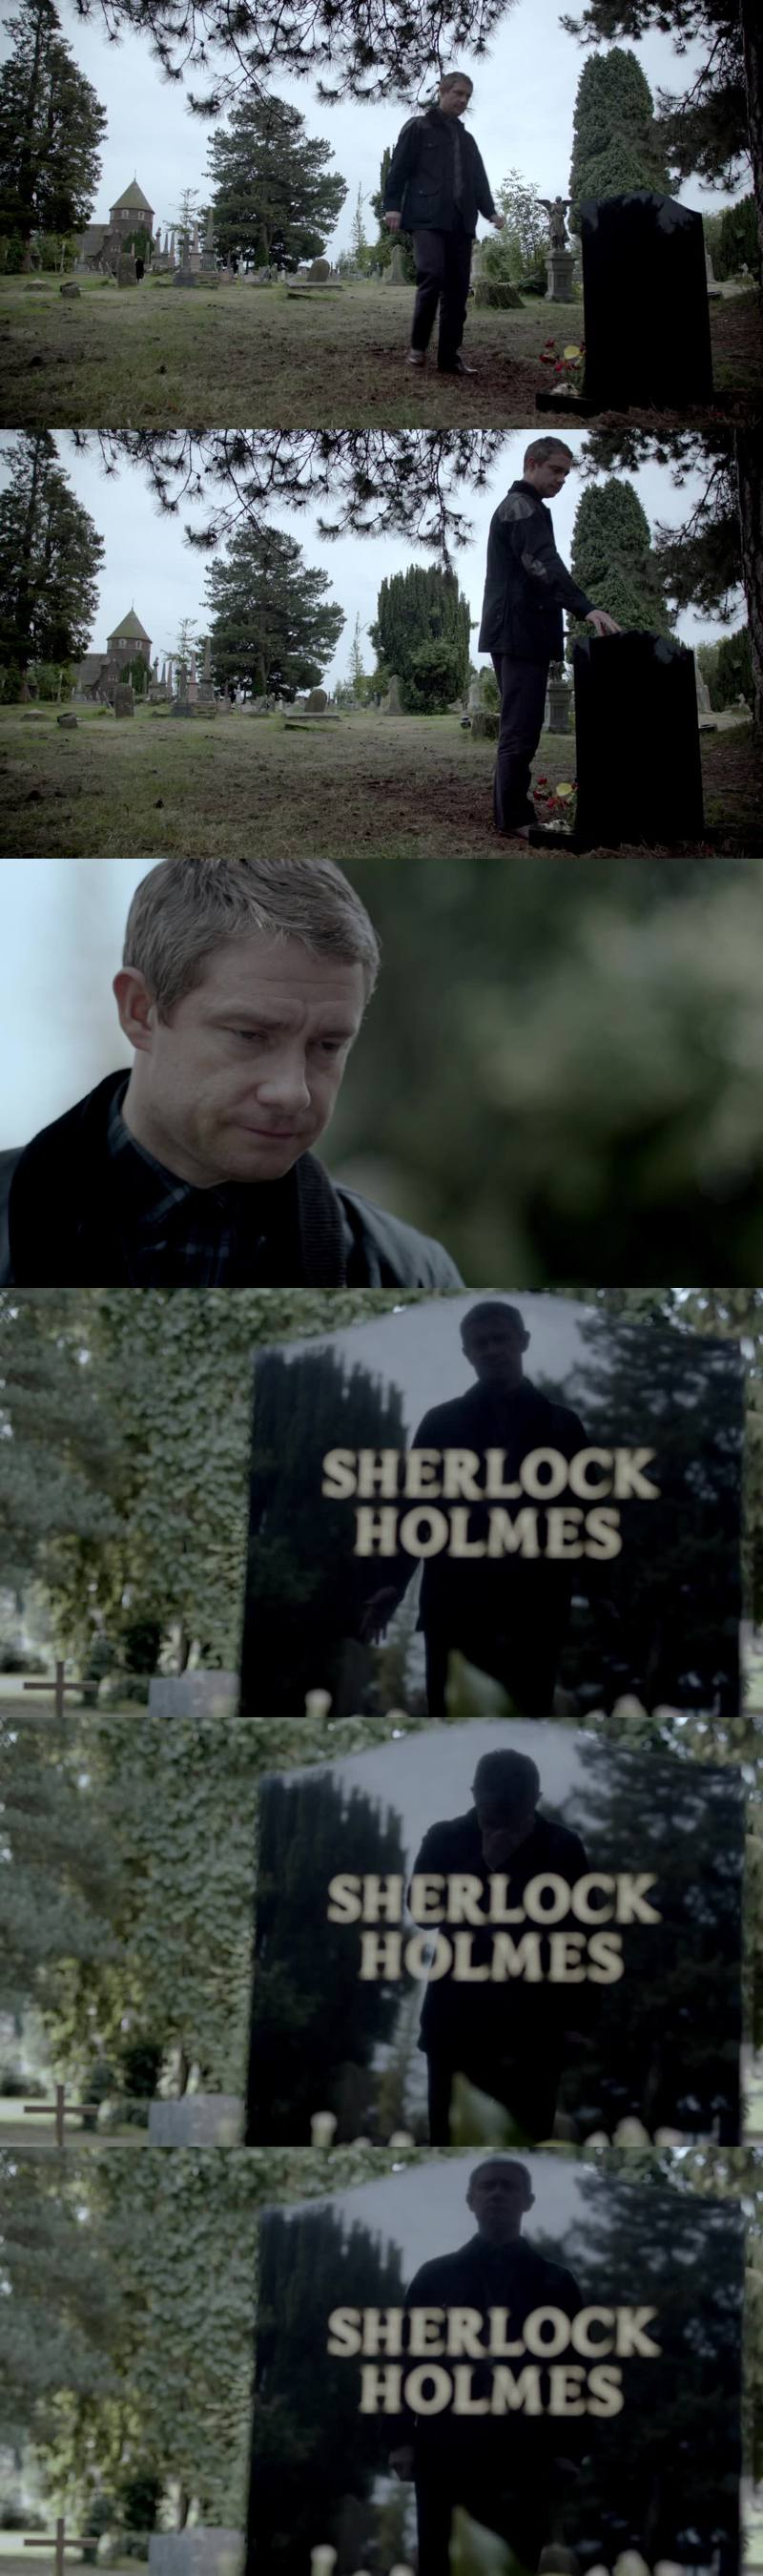 i was so alone, and i owe you so much, but, please, there's just one more thing, one more thing, one more miracle, Sherlock, for me. don't... be... dead